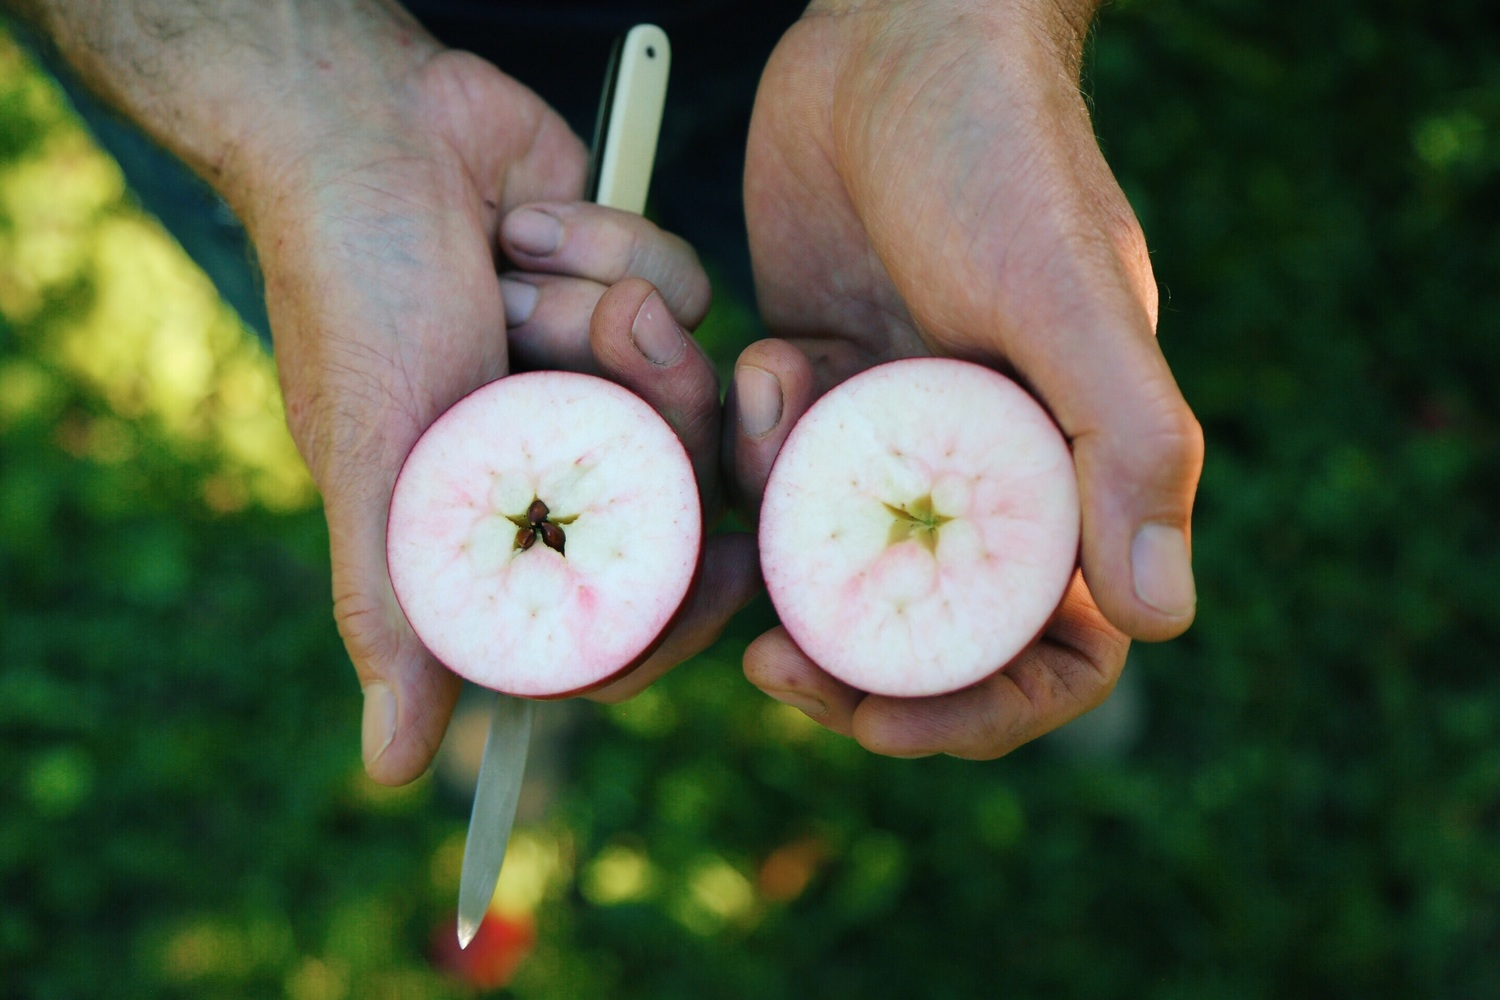 Kevin Zielinski of E.Z. Orchard bearing the heirloom fruits of his labor.